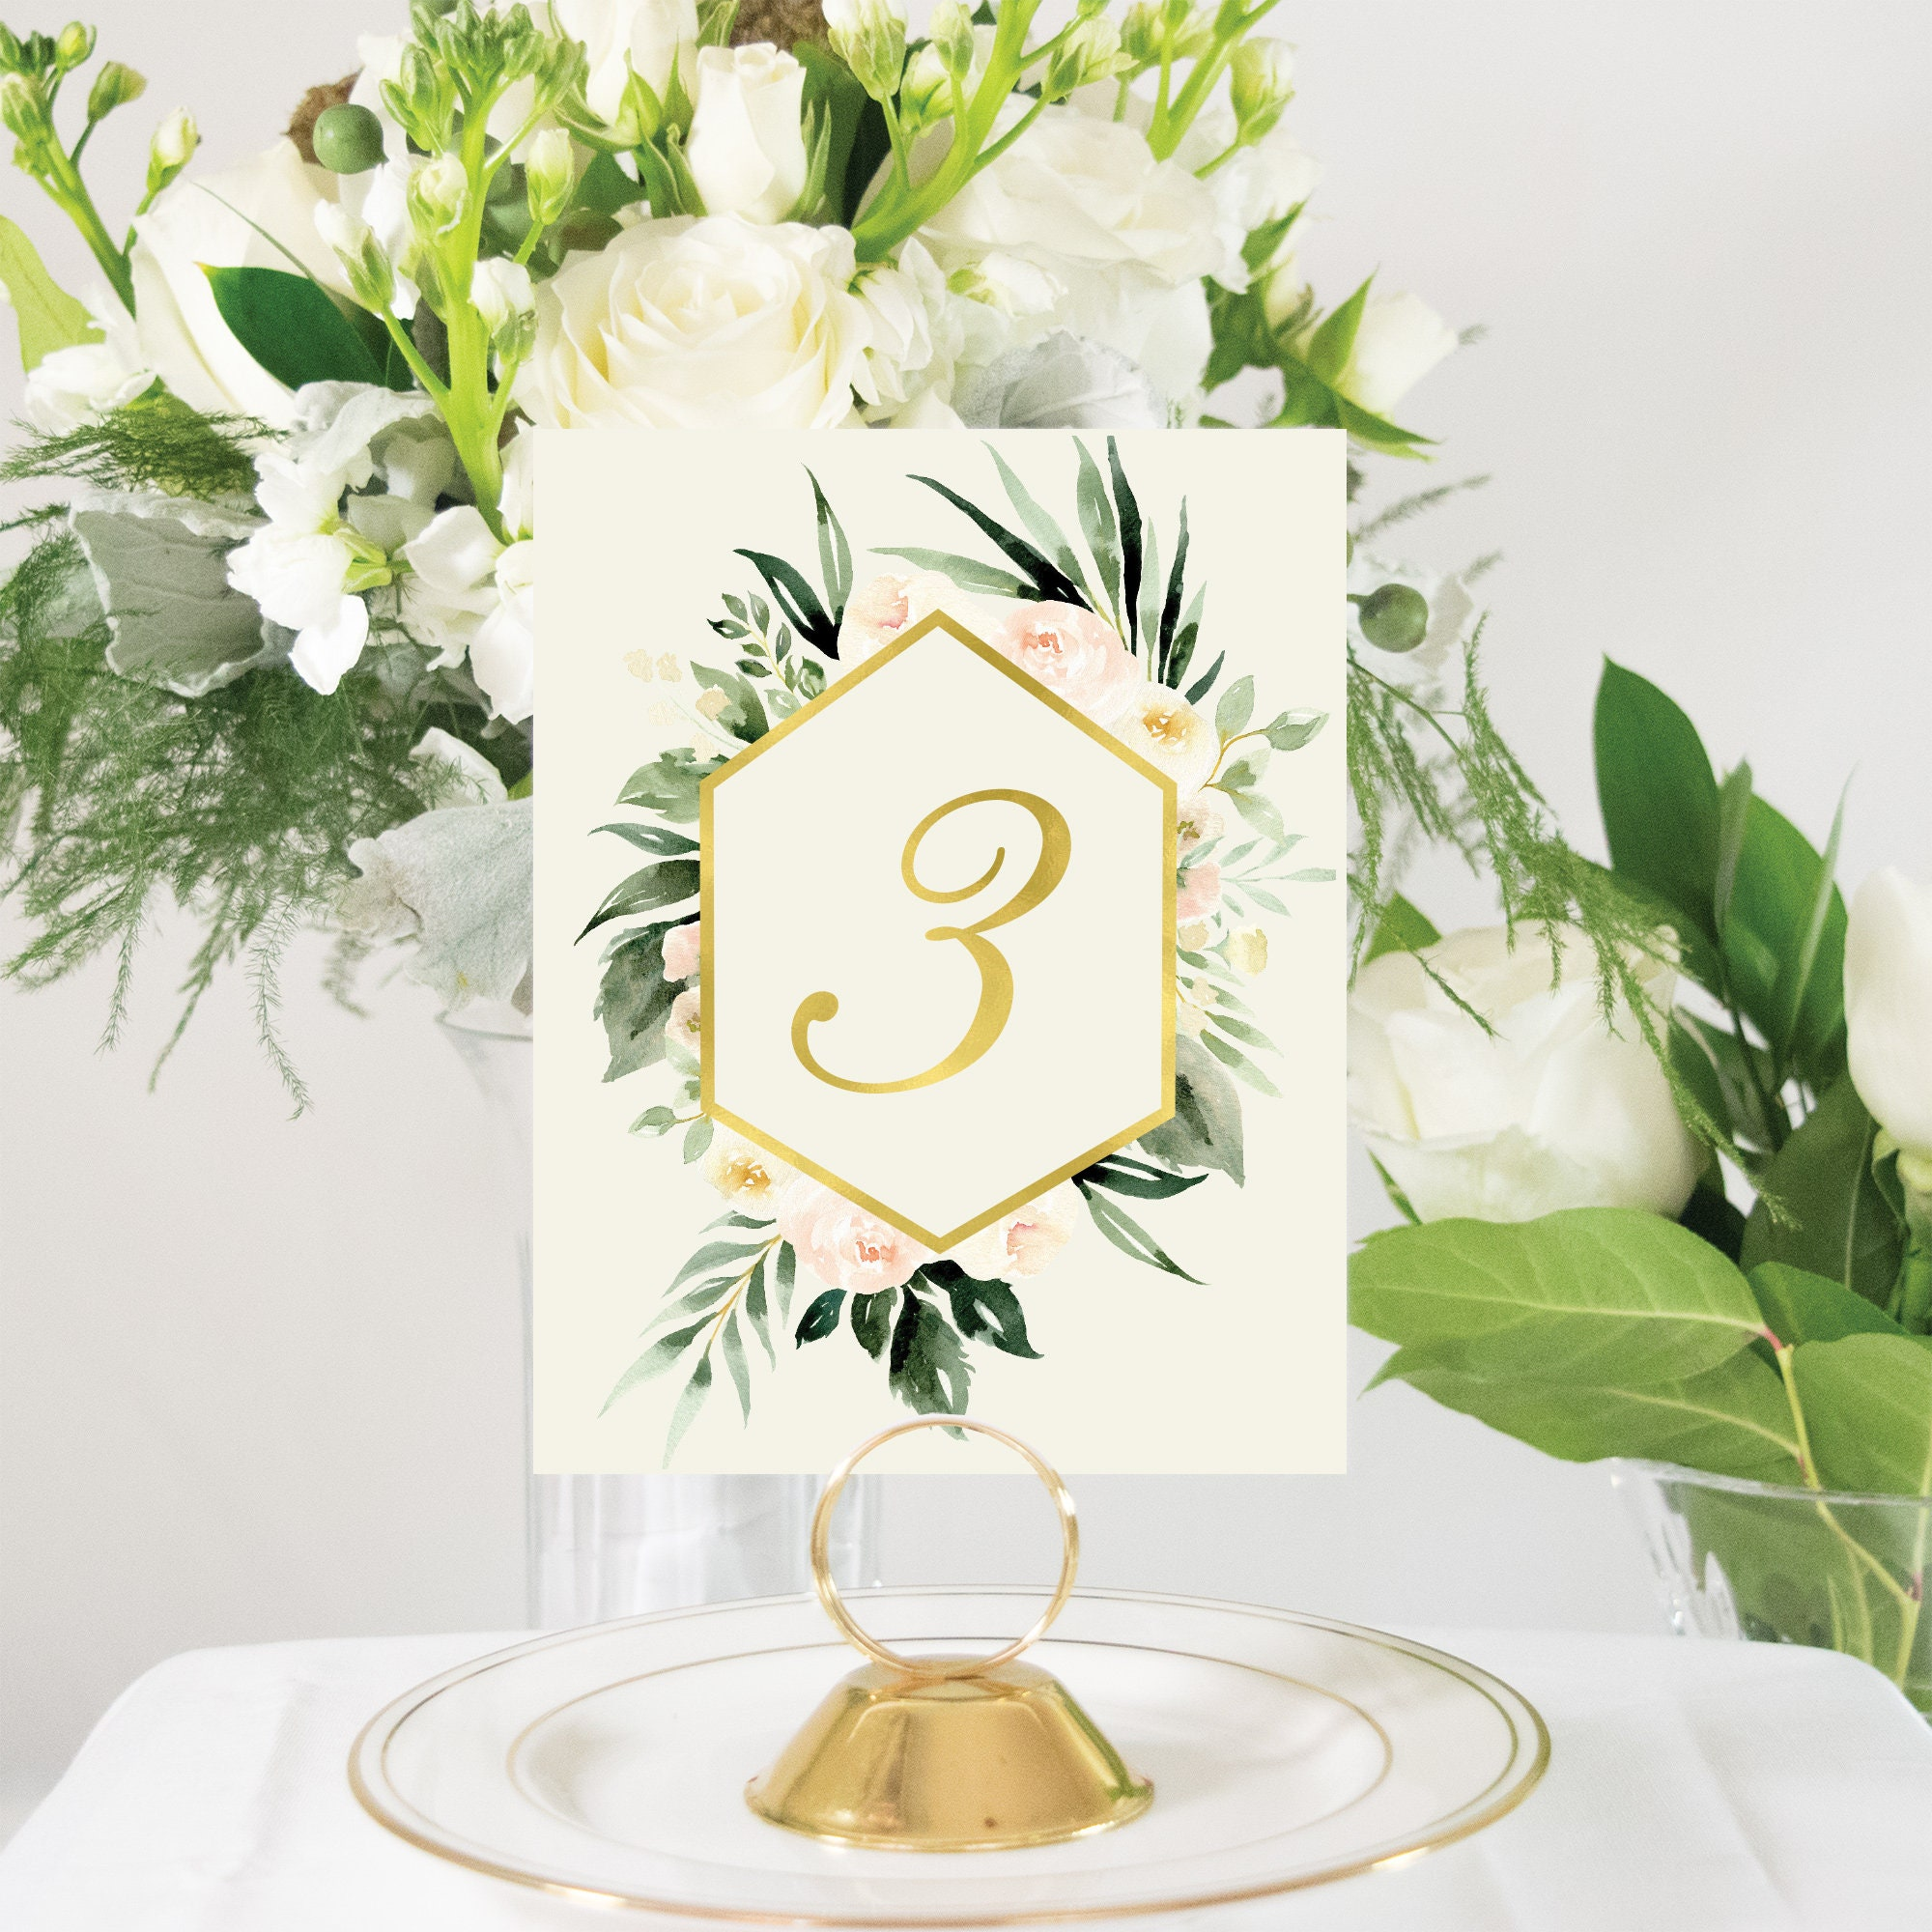 Greenery Blush Pink Ivory & Gold Floral Table Numbers Wedding